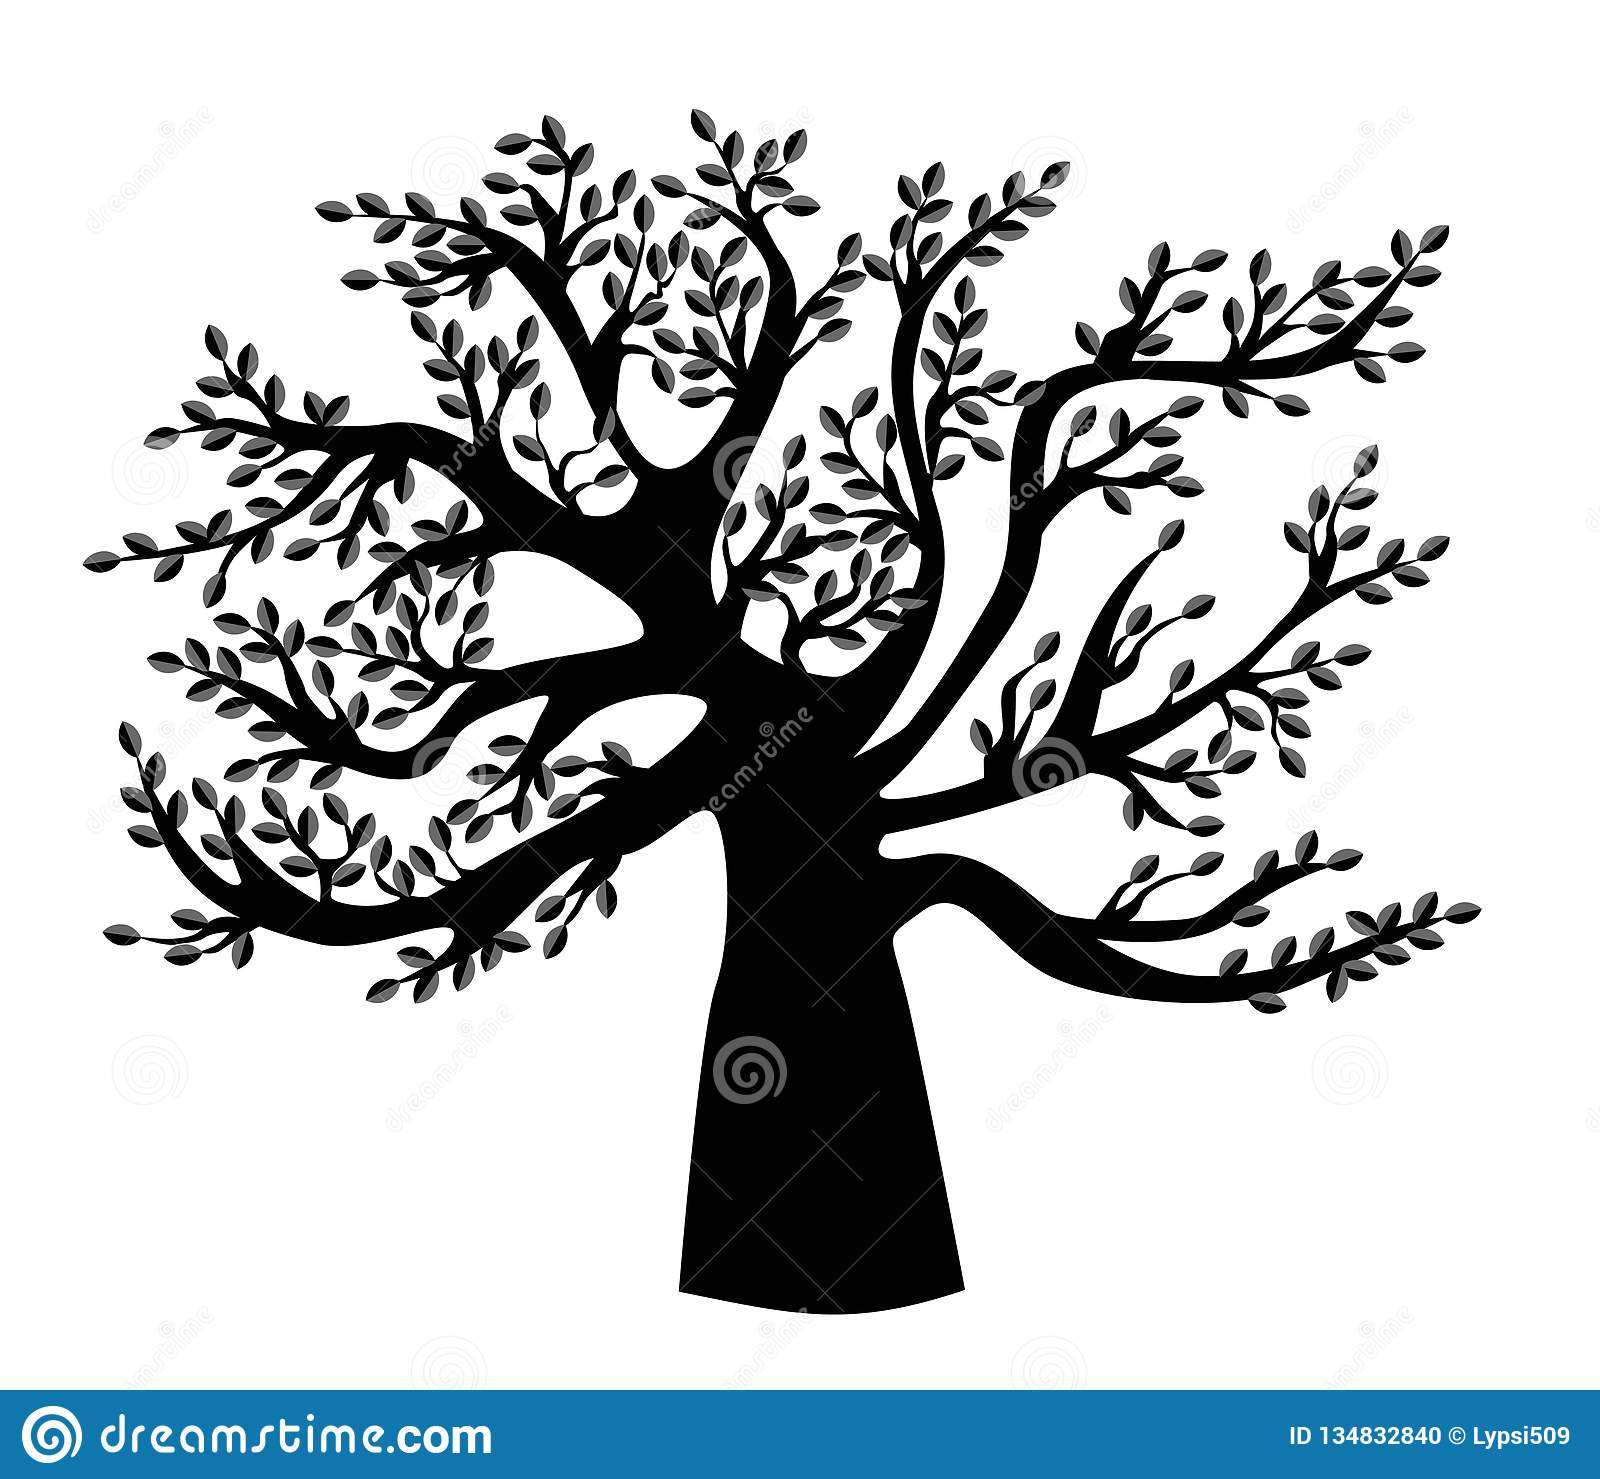 Family Tree Template For Pictures from thumbs.dreamstime.com